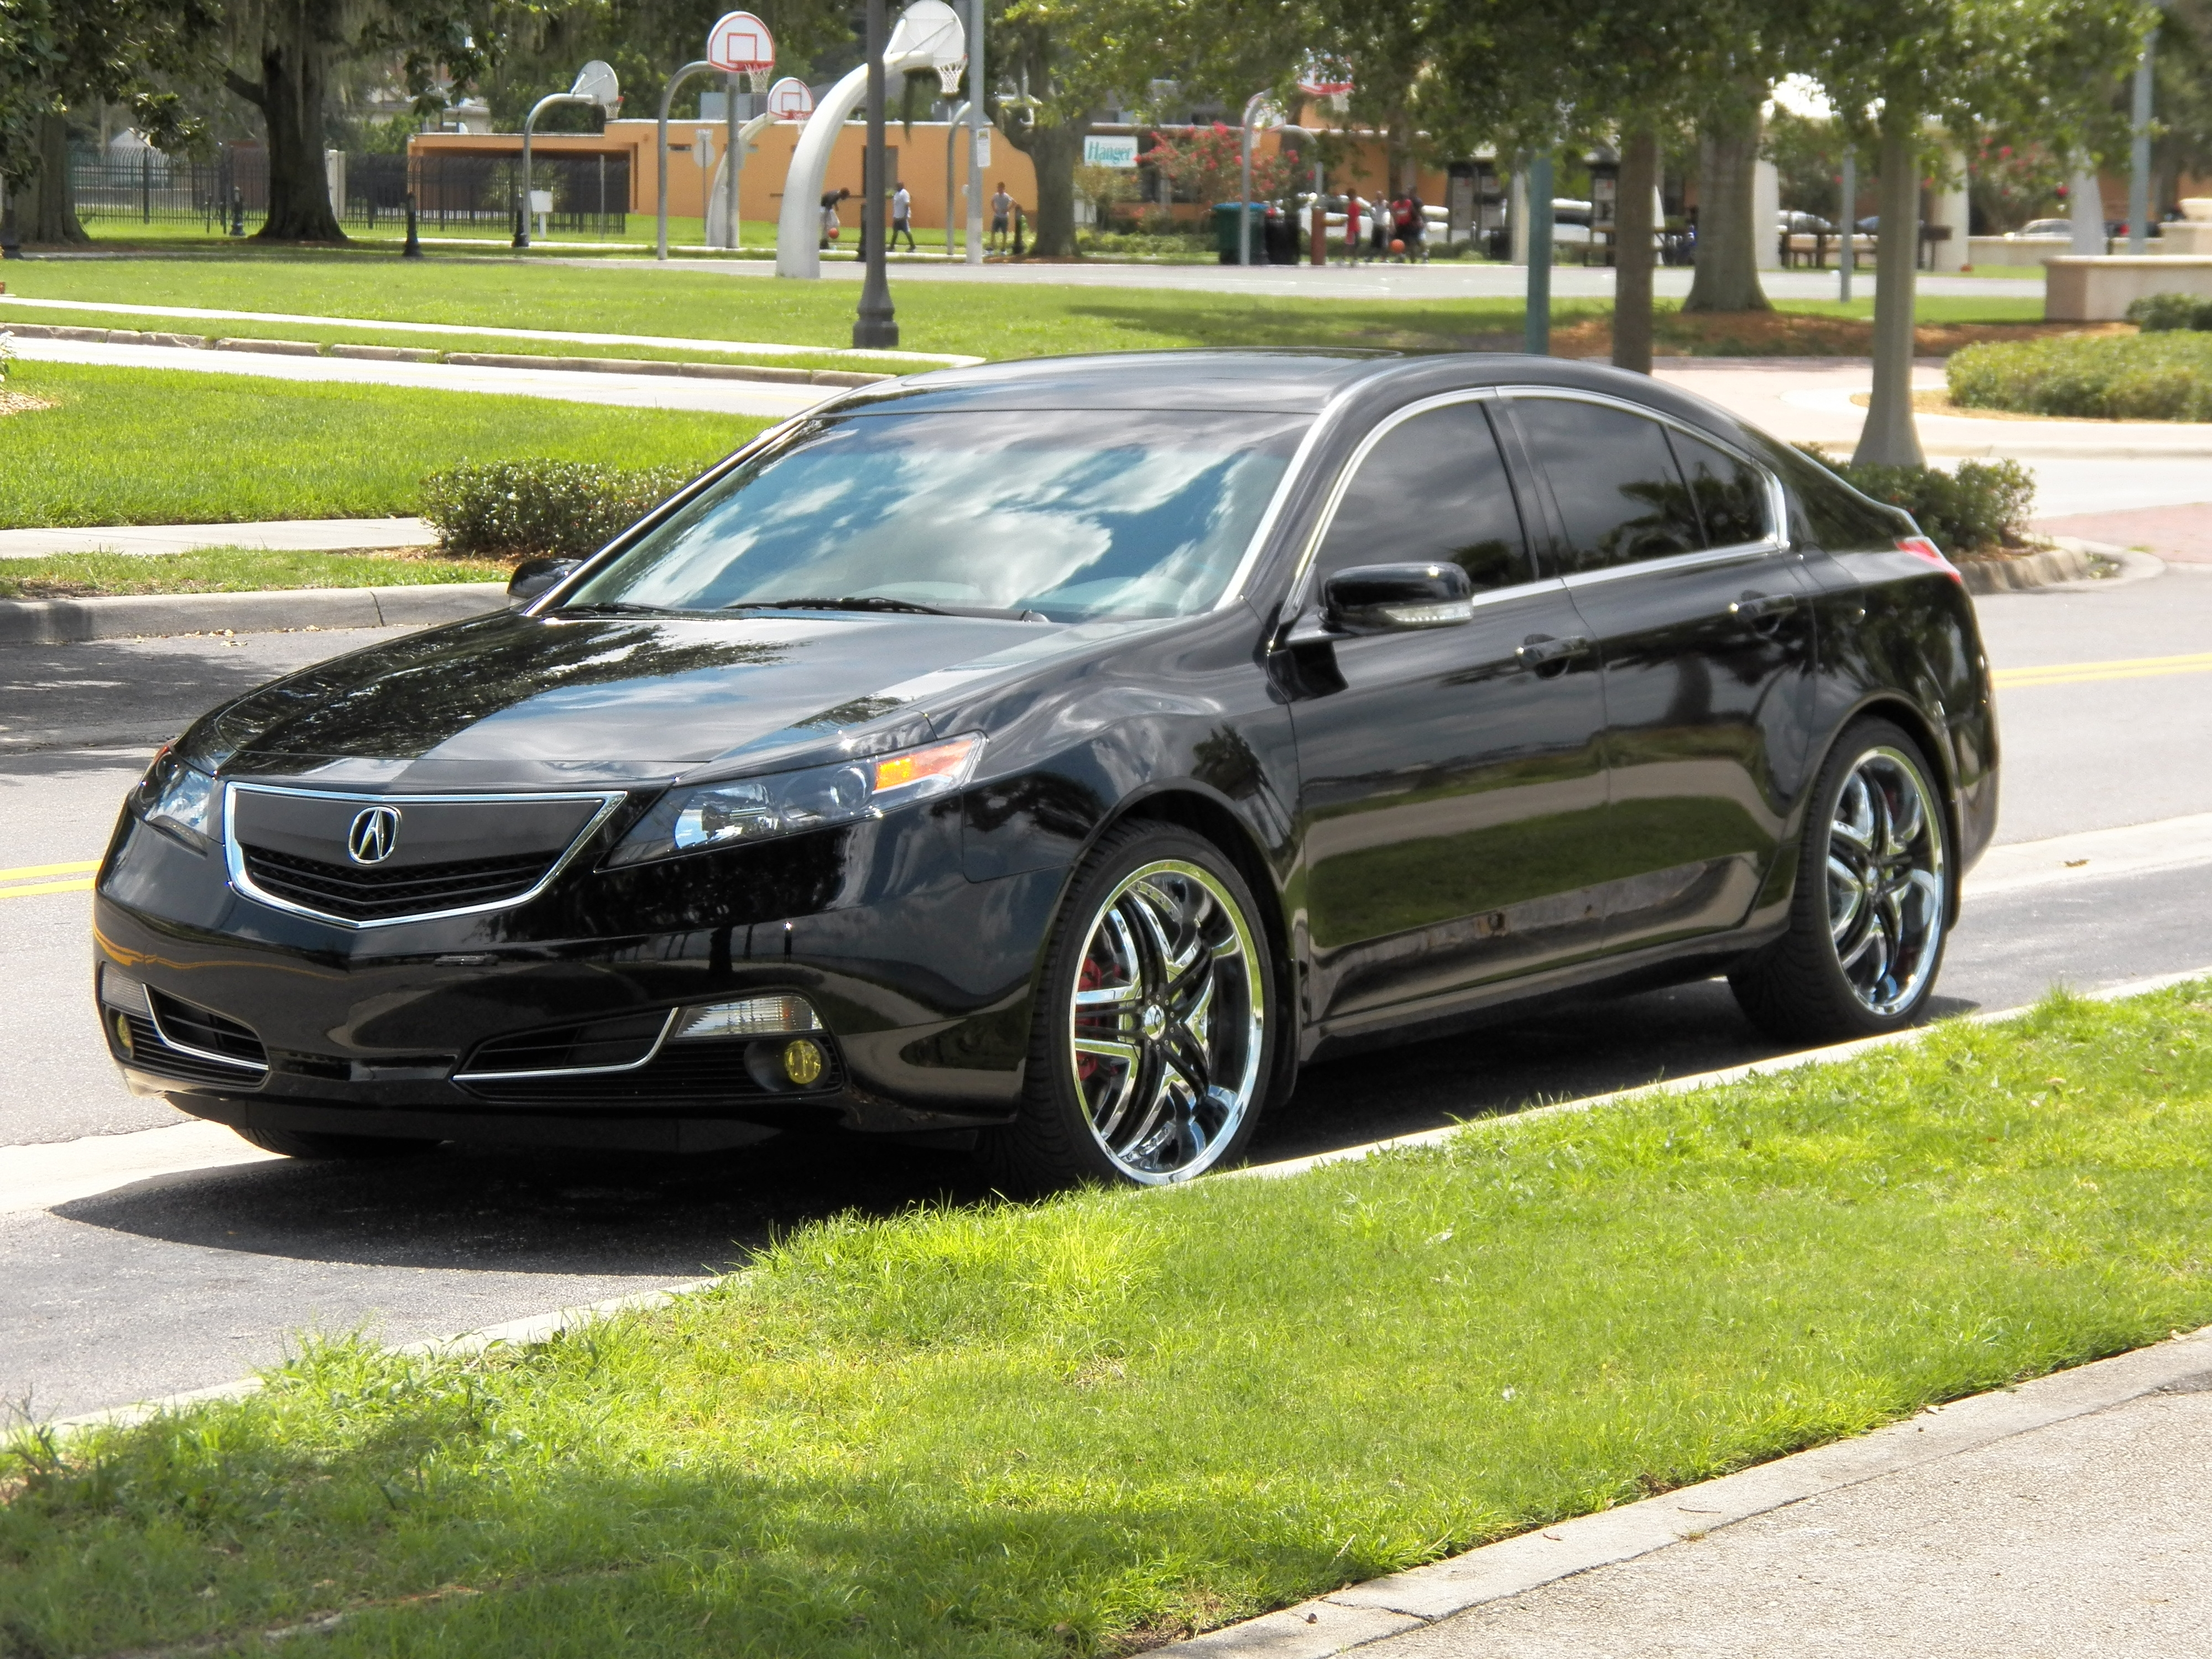 dyrtyred 2012 acura tl s photo gallery at cardomain